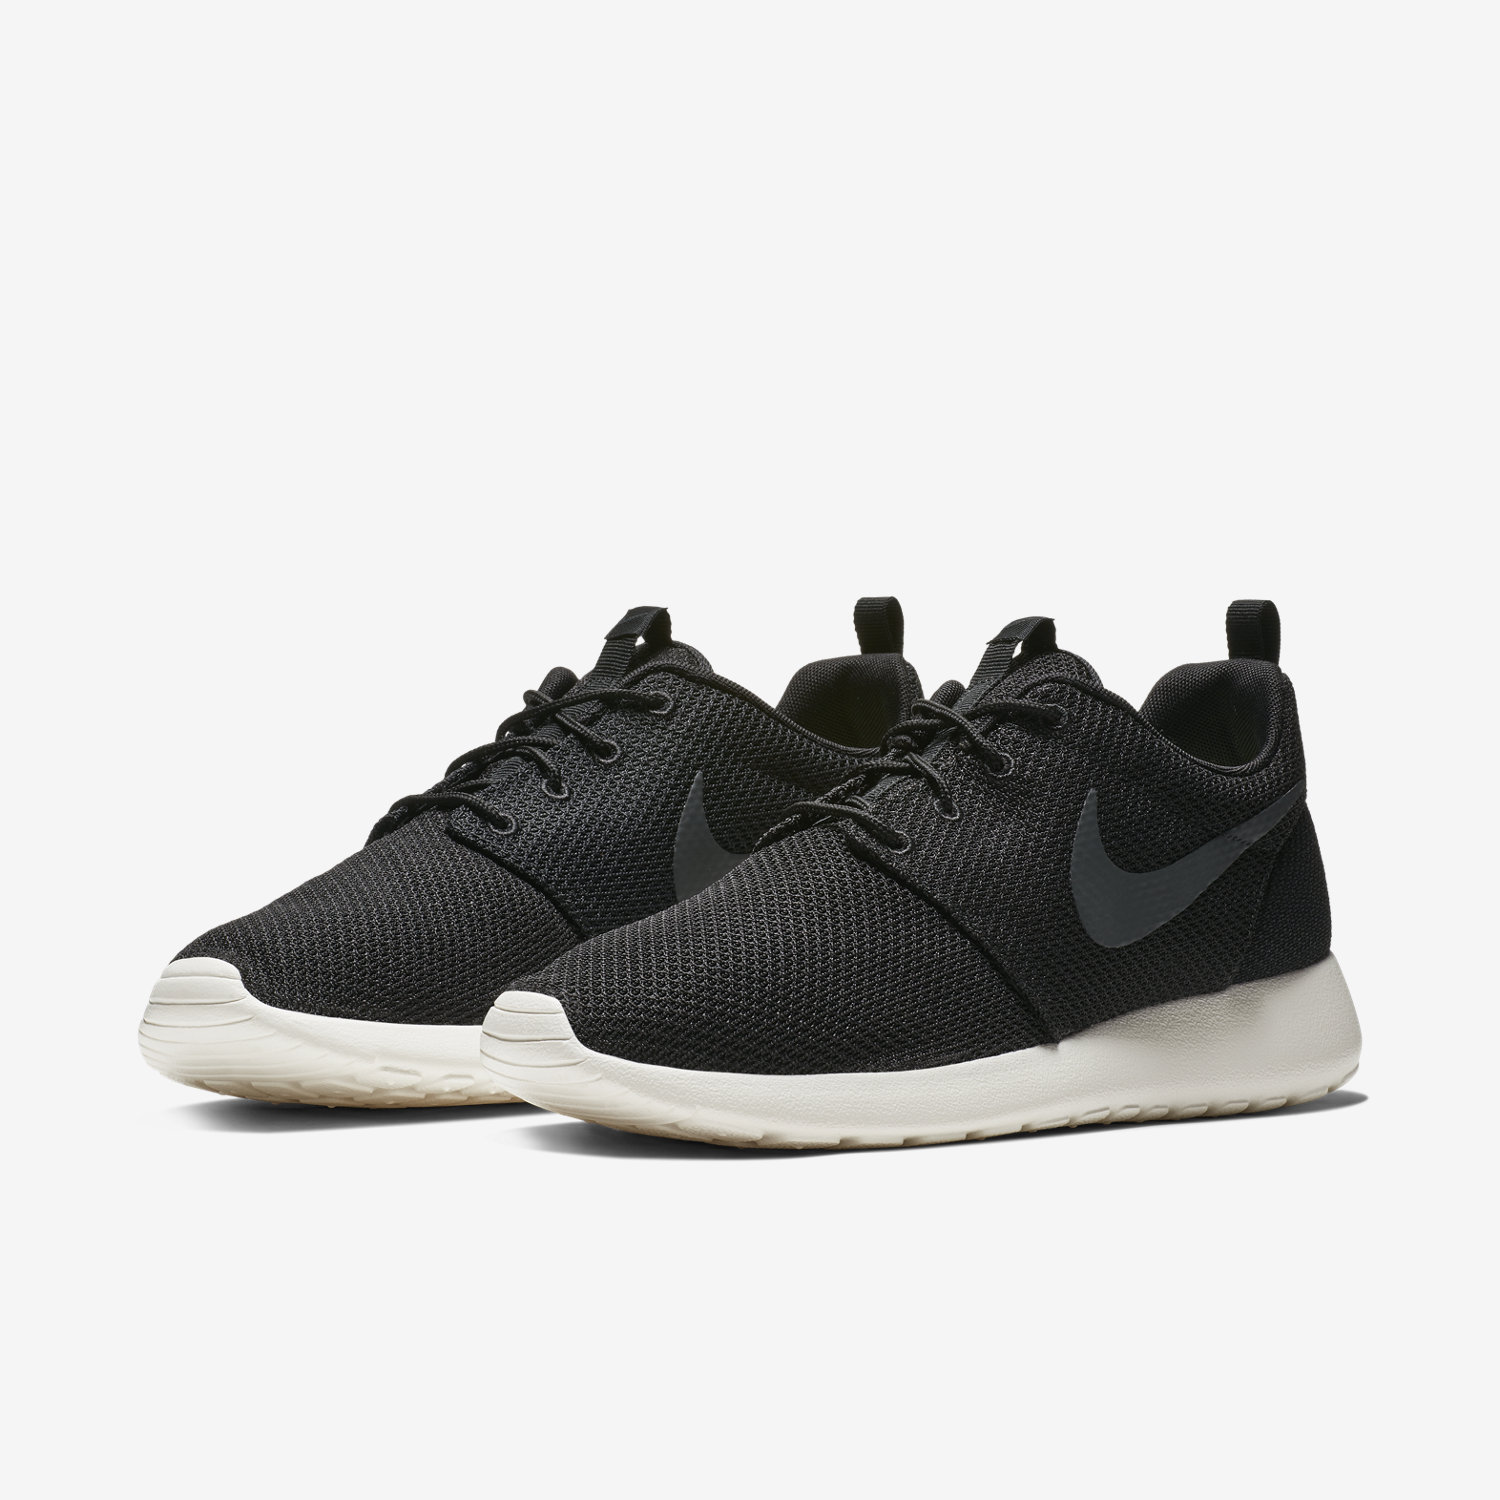 nike roshe run damen wei billig. Black Bedroom Furniture Sets. Home Design Ideas